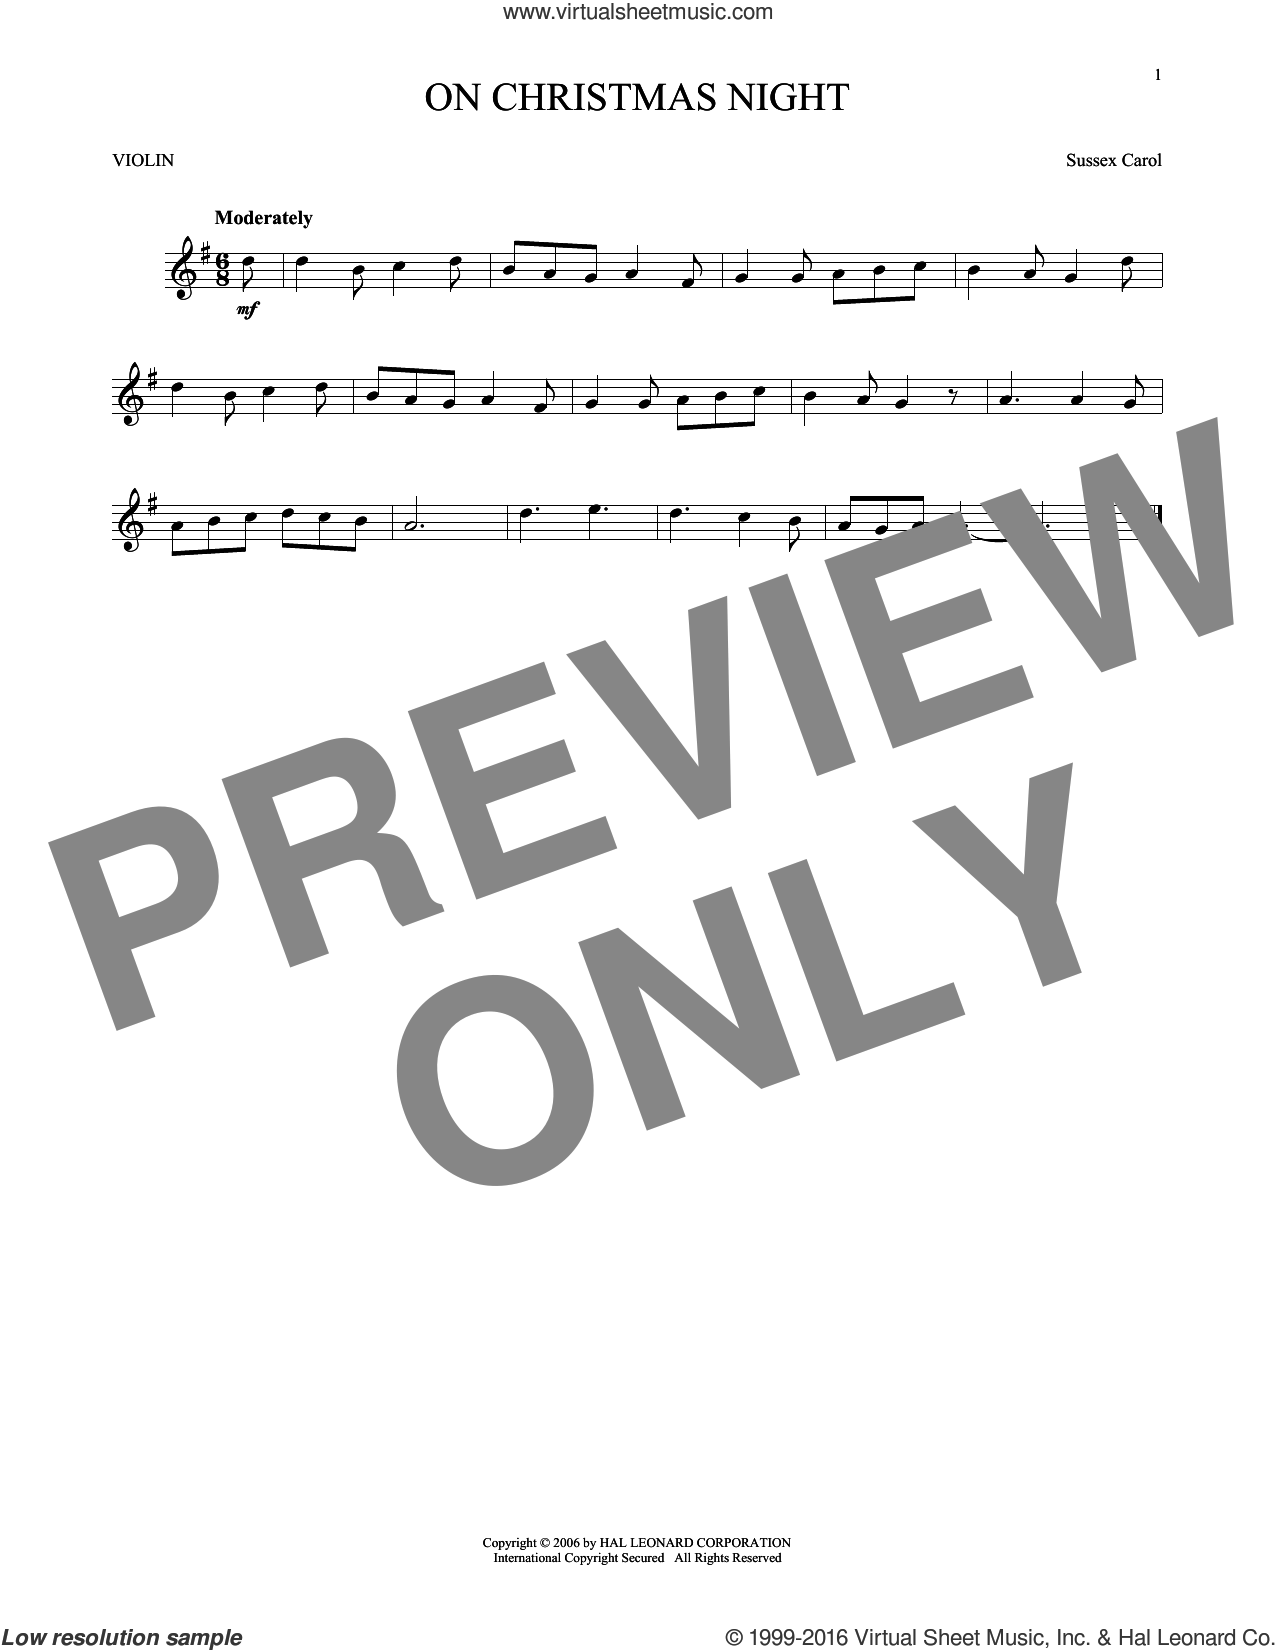 On Christmas Night sheet music for violin solo. Score Image Preview.